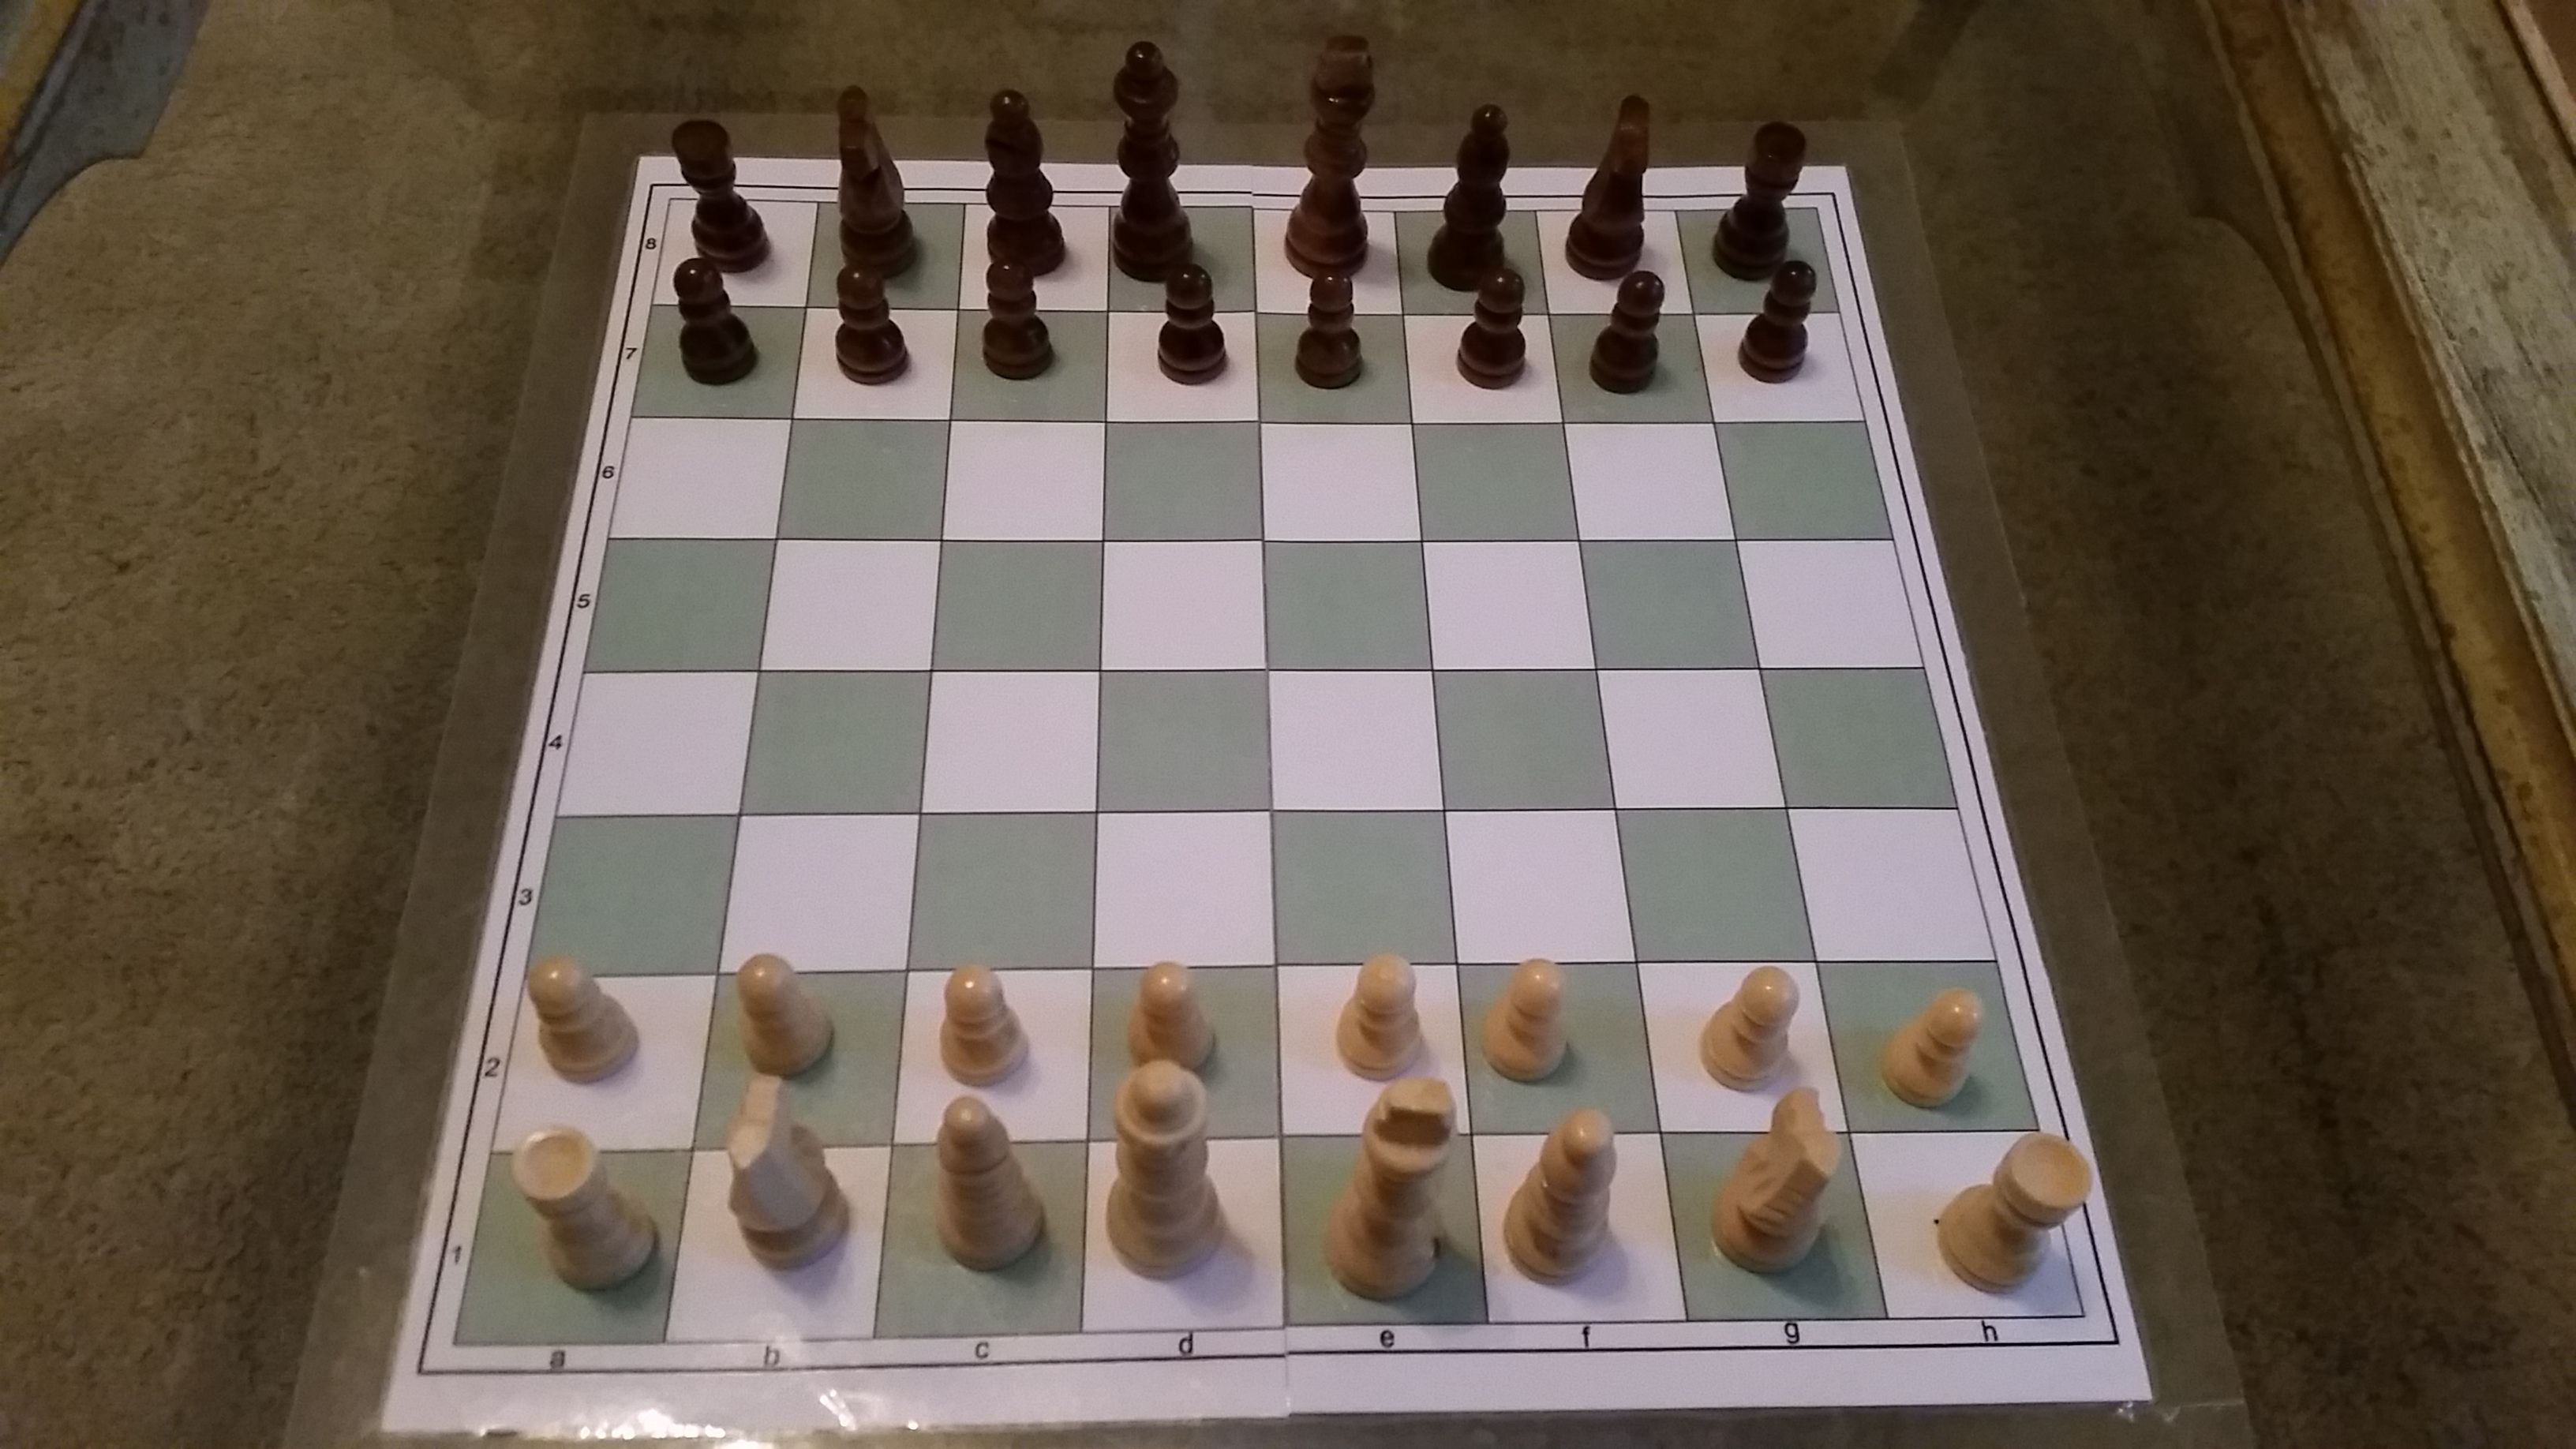 photo regarding Printable Chess Pieces named Absolutely free printable chessboards! - Chess Community forums -